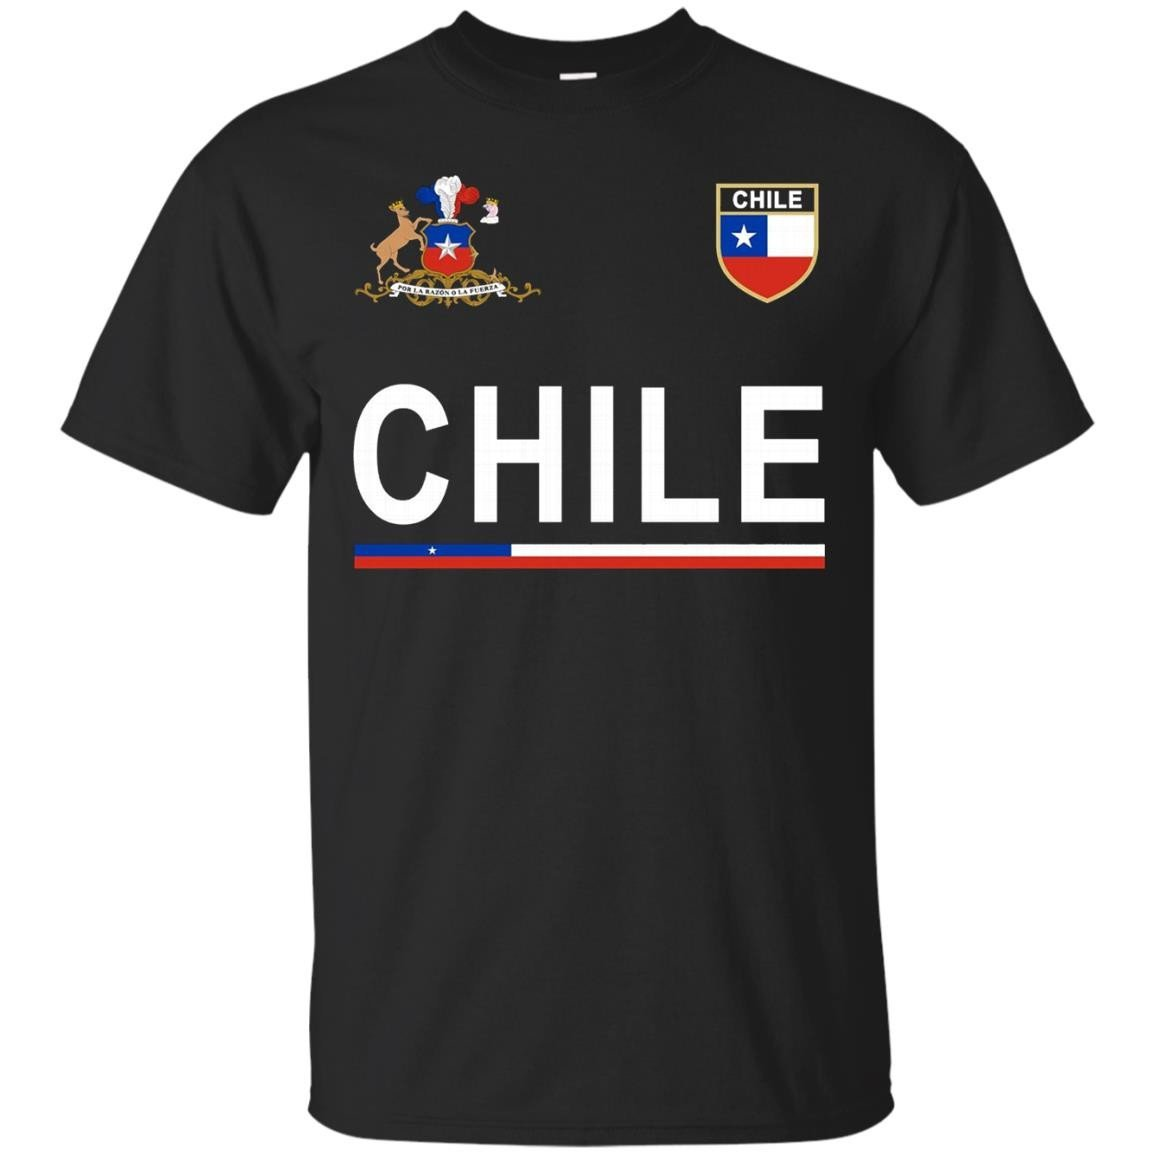 Chile Soccer T-Shirt – Chilean Football Jersey